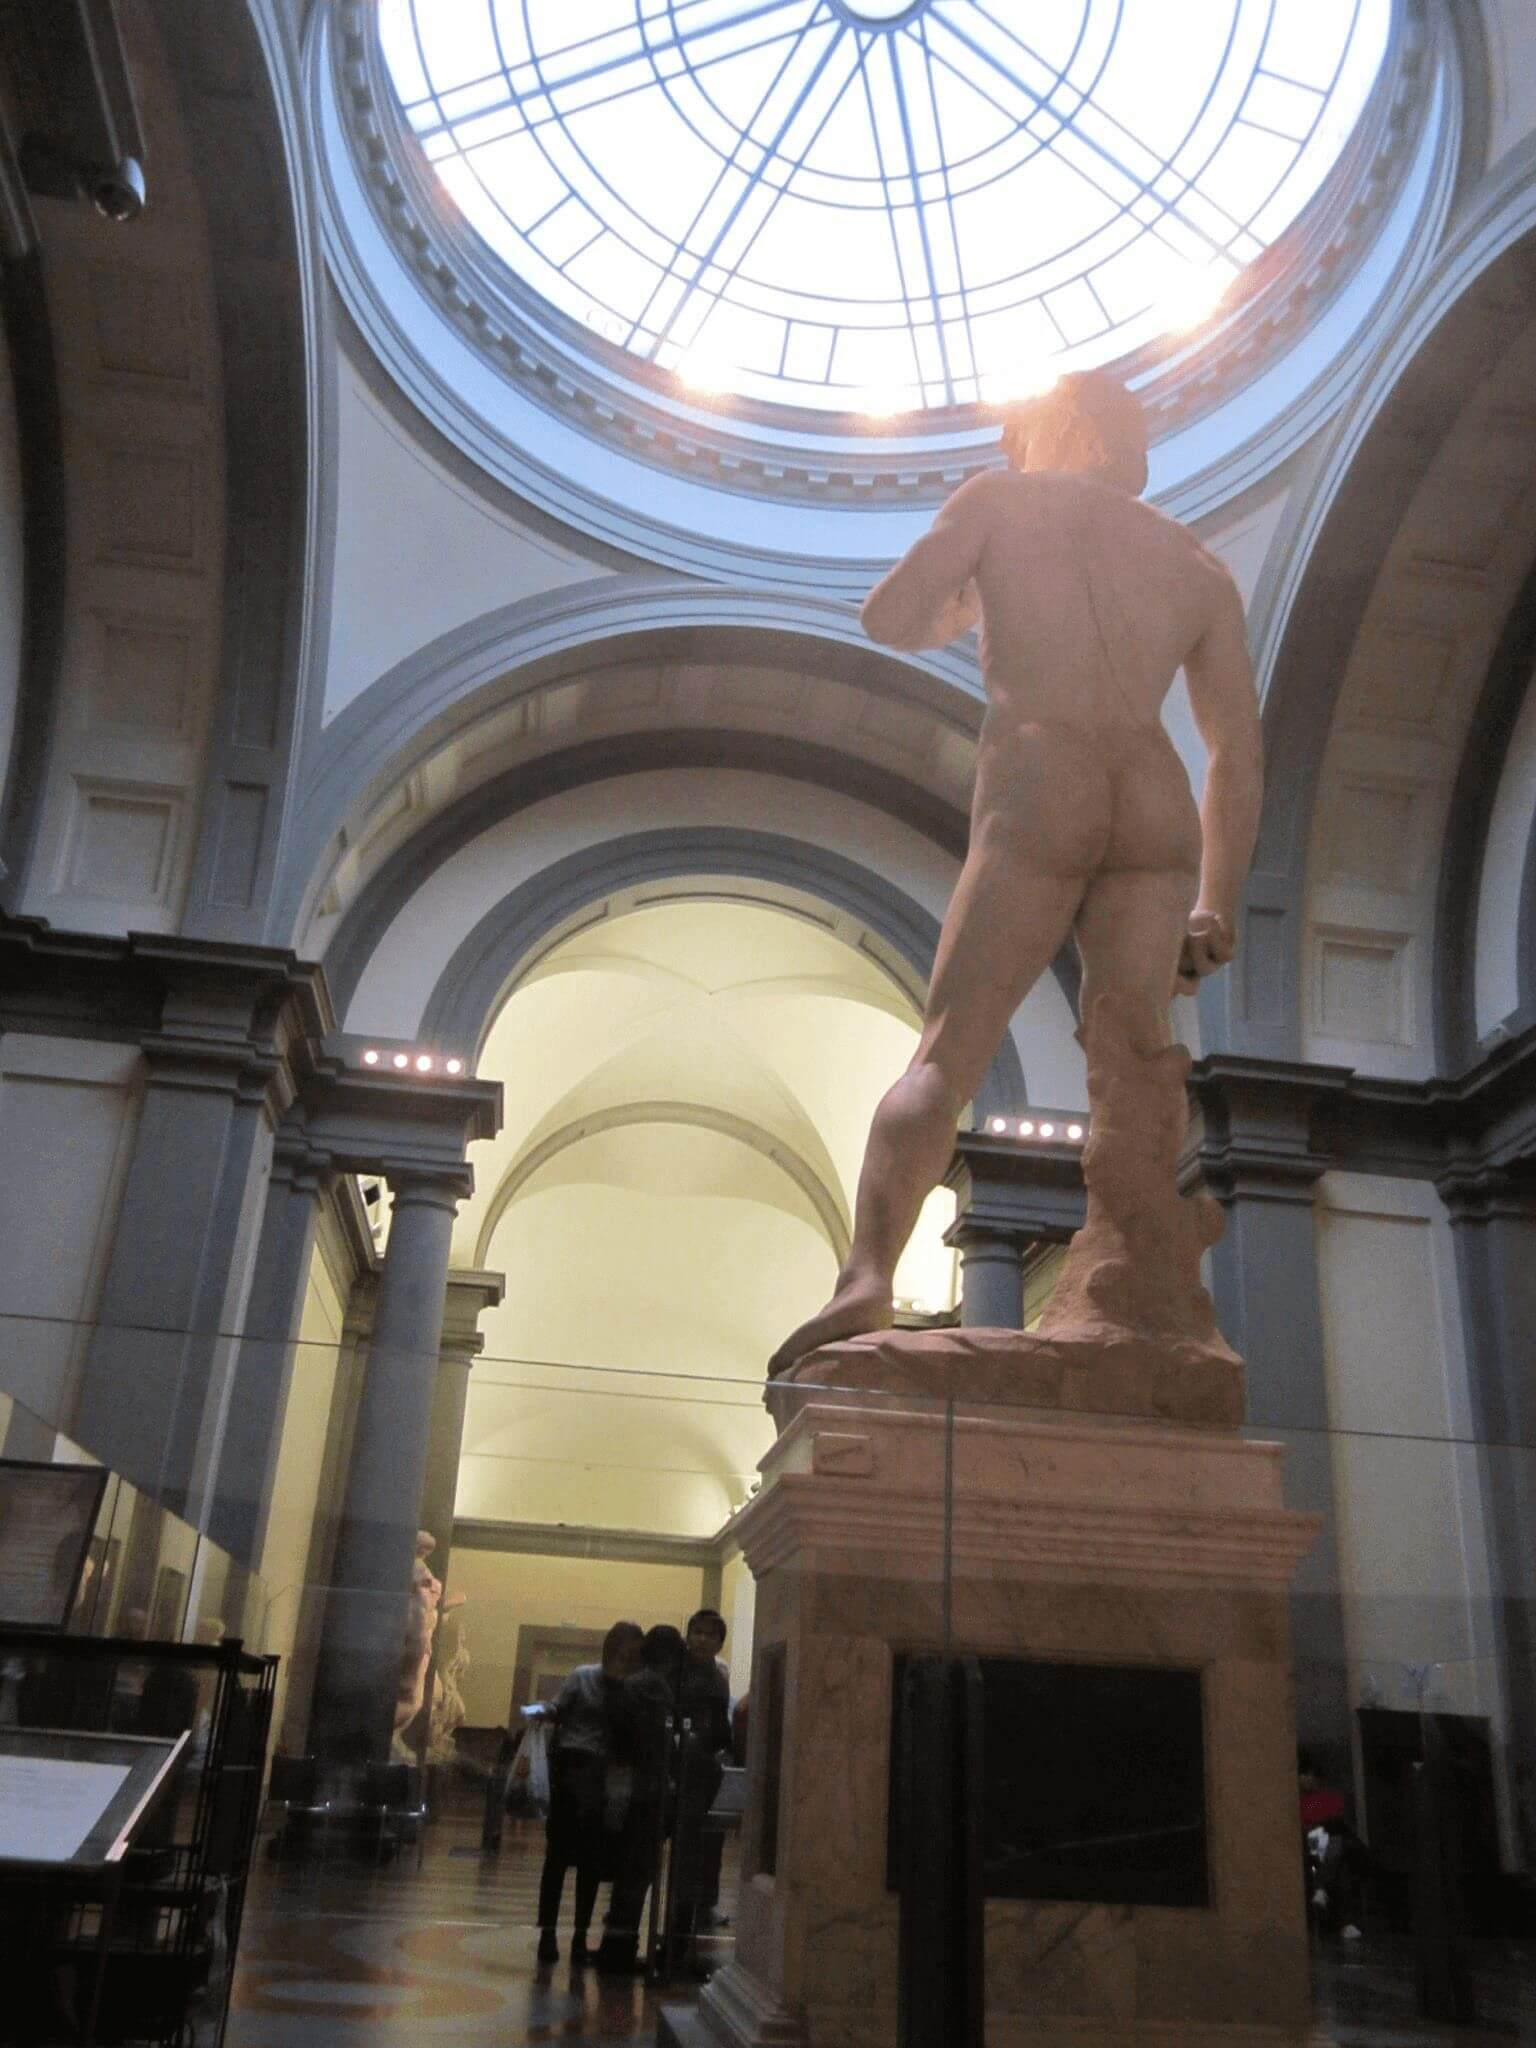 The David inside the Accademia Gallery. Oh, heyyyy